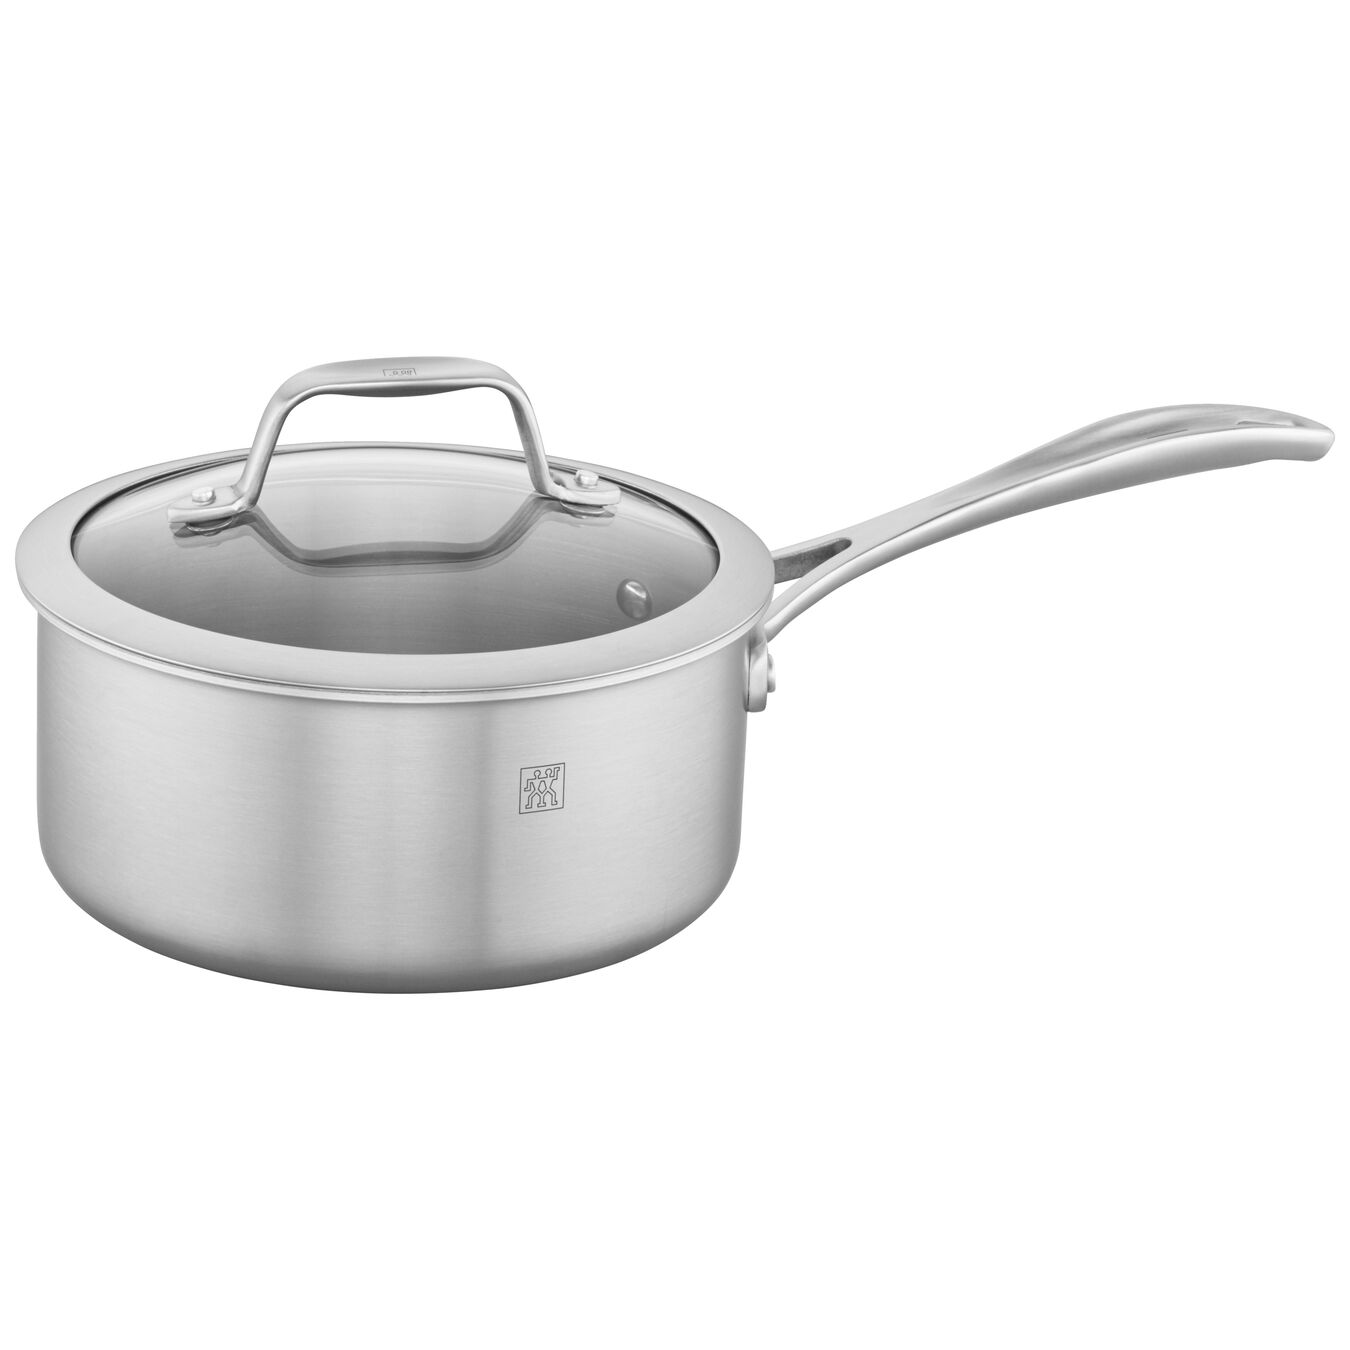 1.75 qt, 18/10 Stainless Steel, Non-stick, Sauce pan,,large 1